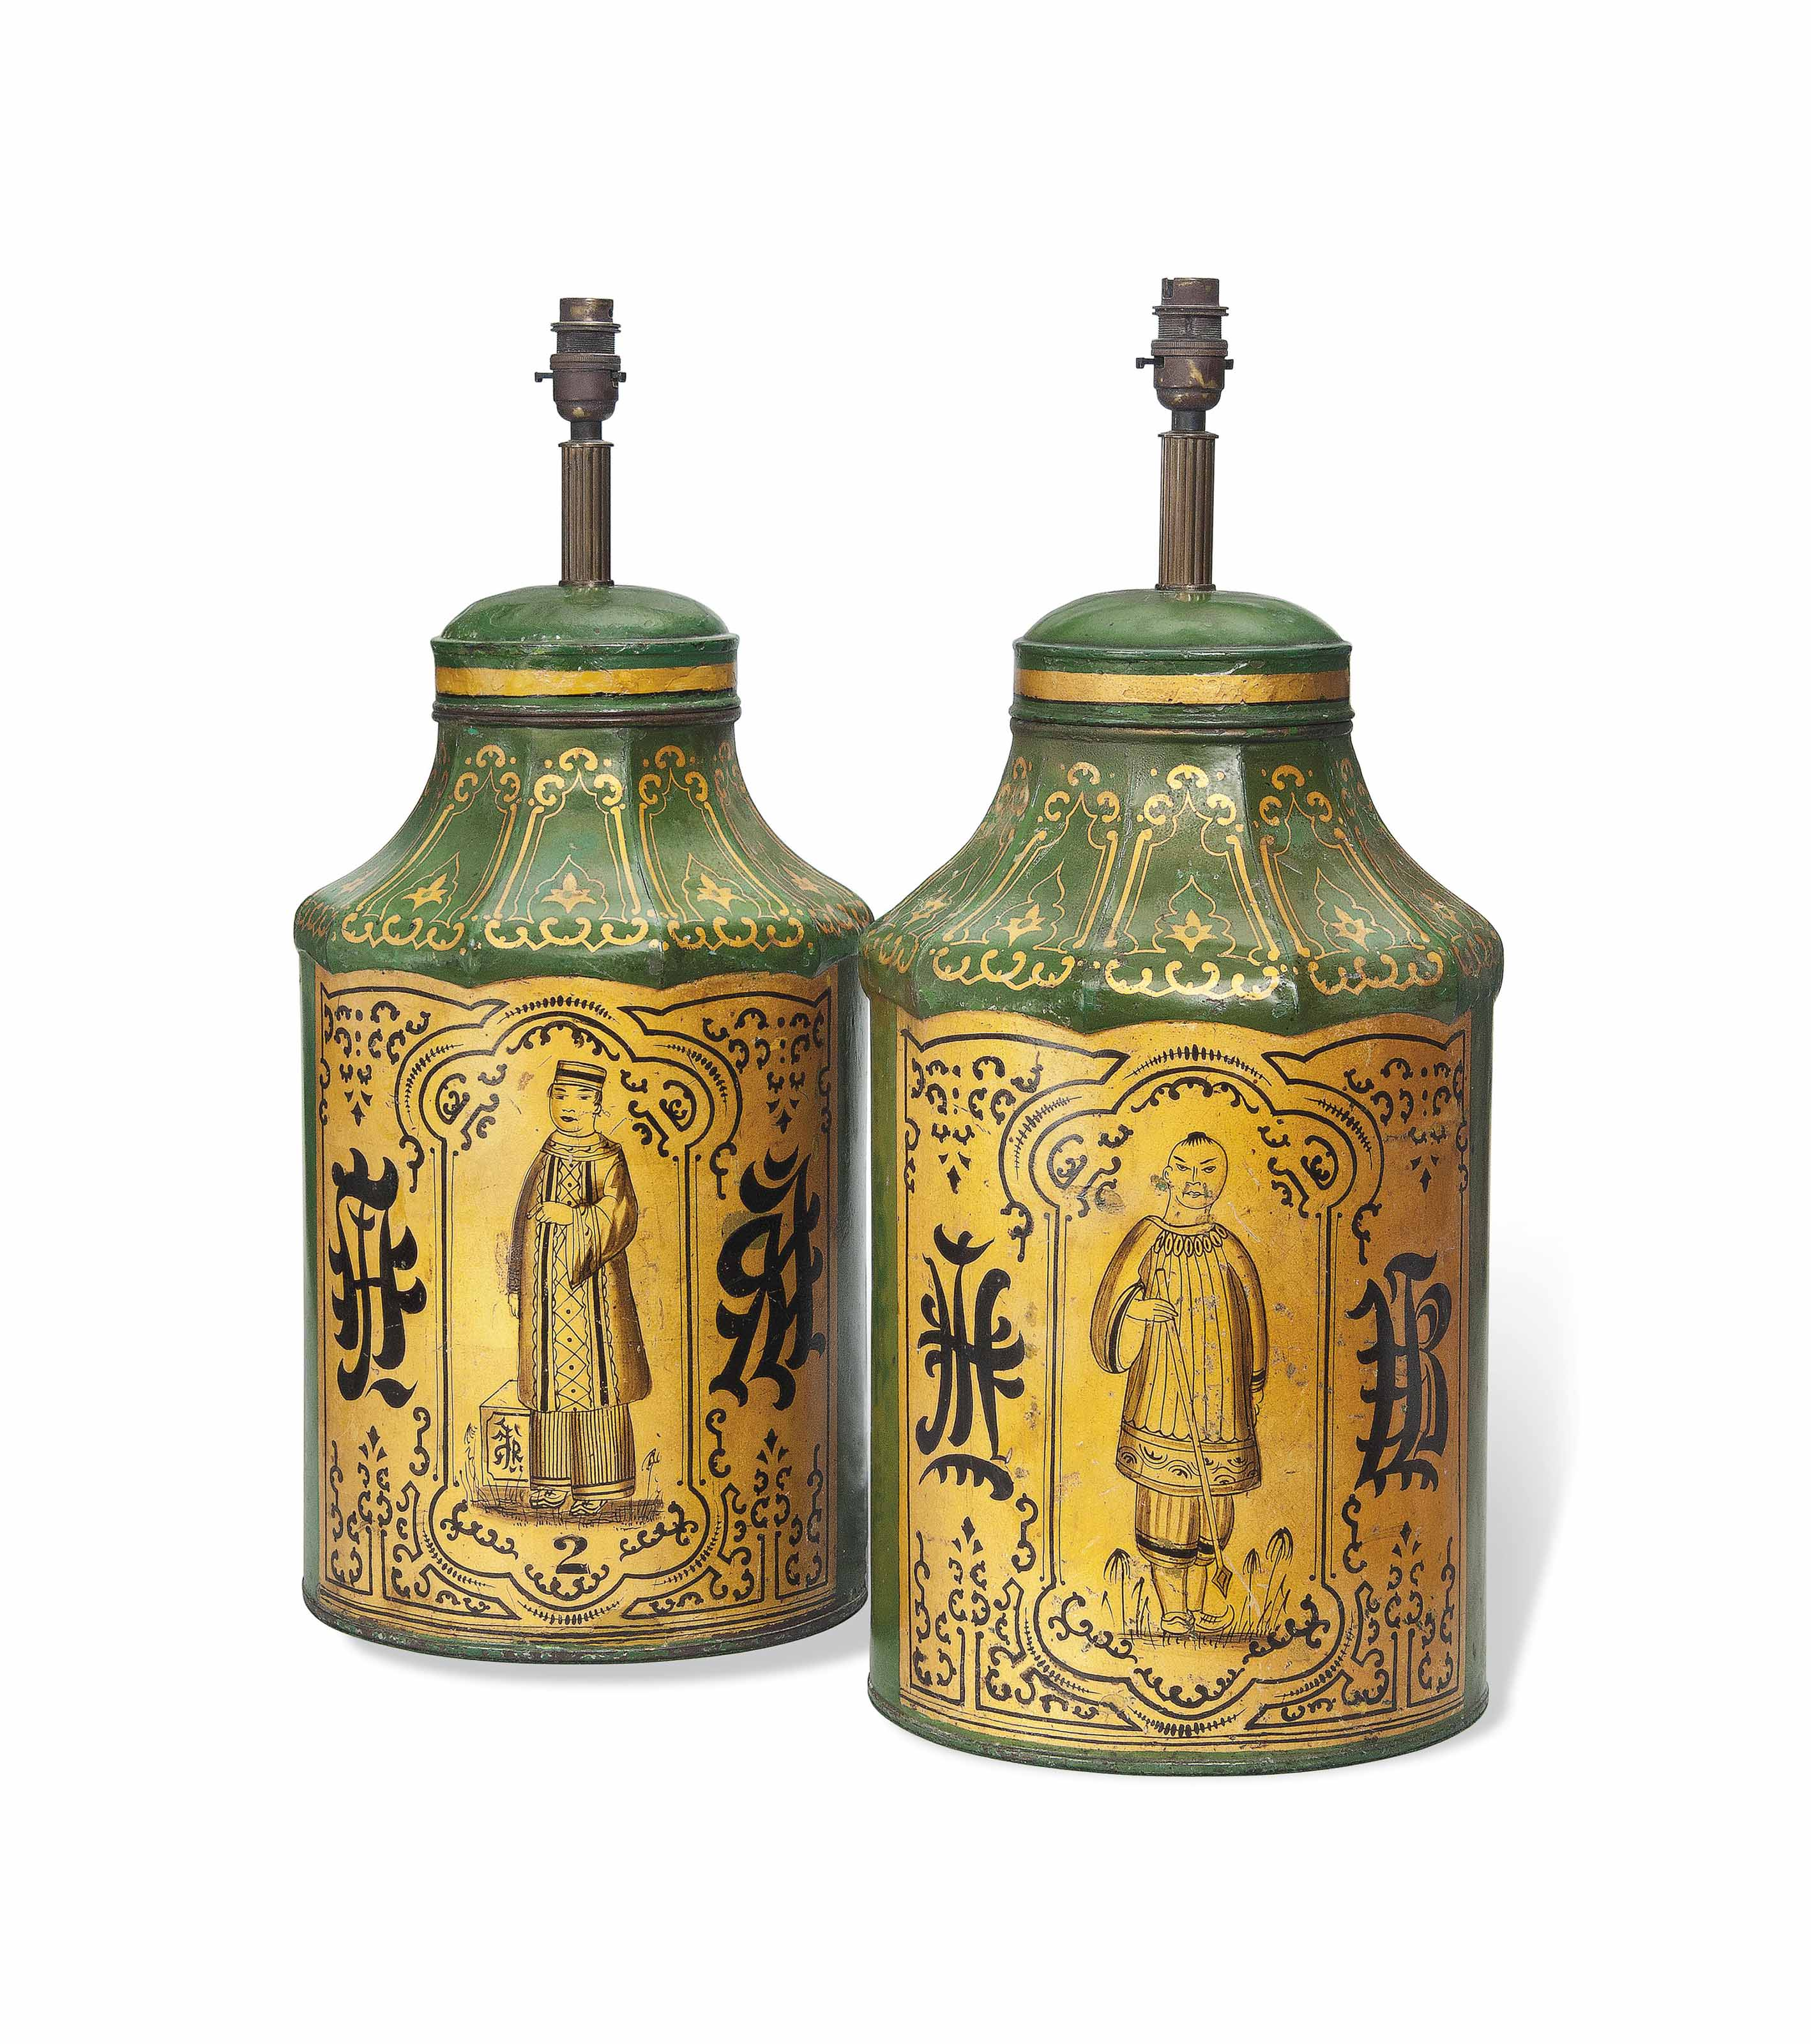 A PAIR OF ENGLISH TOLE TEA CANNISTERS ADAPTED TO TABLE LAMPS